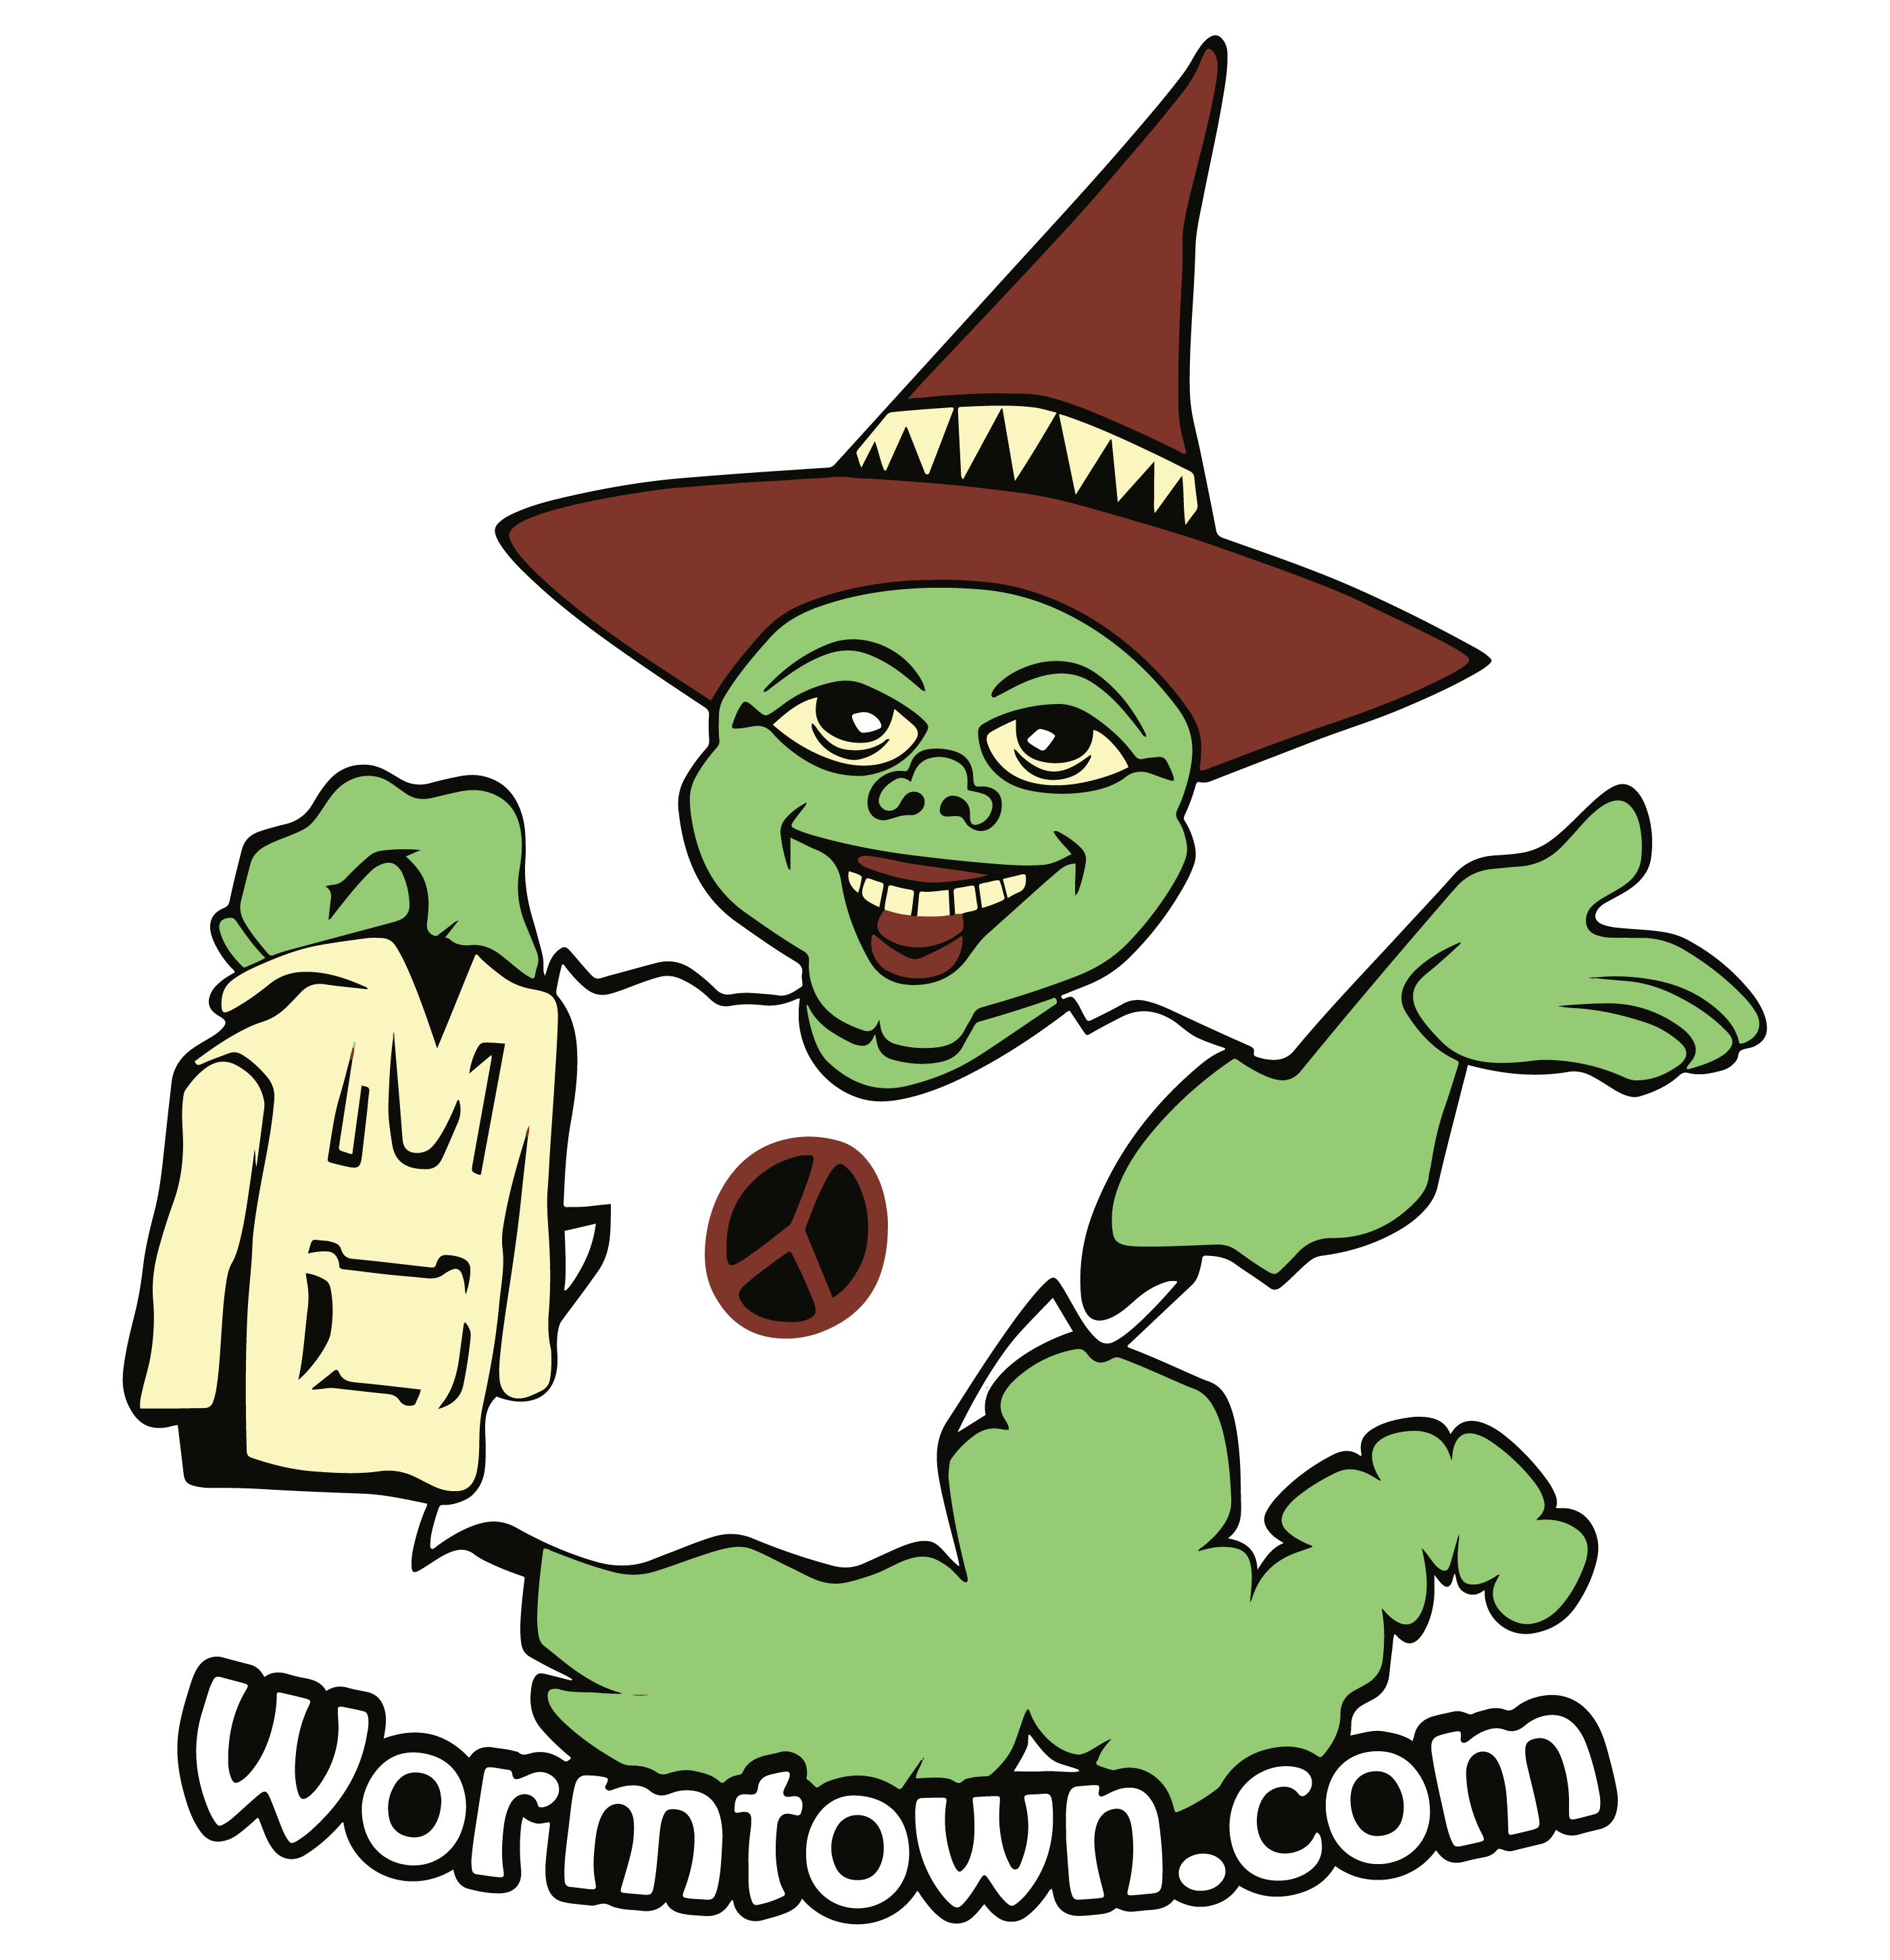 Wormtown Trading Company